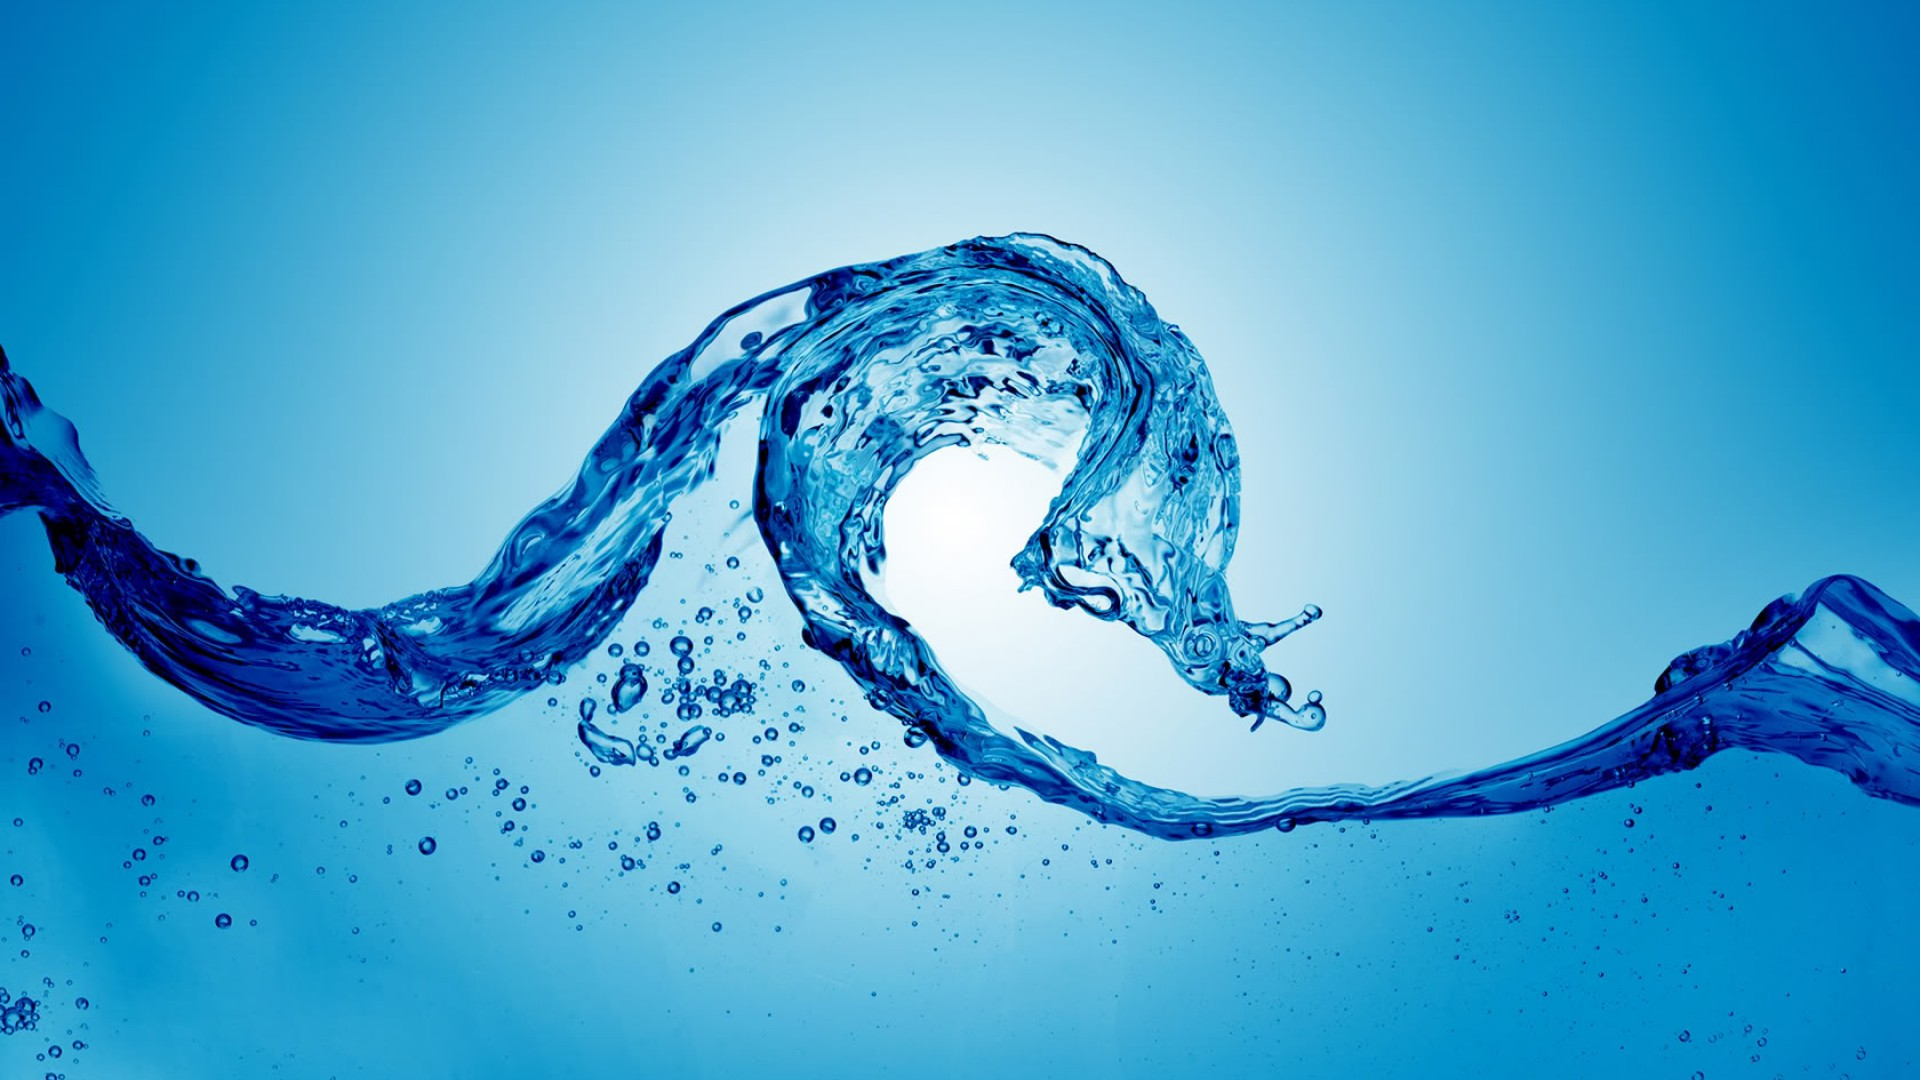 DOWNLOAD DESKTOP BACKGROUND: Water Background - FULL SIZE ...